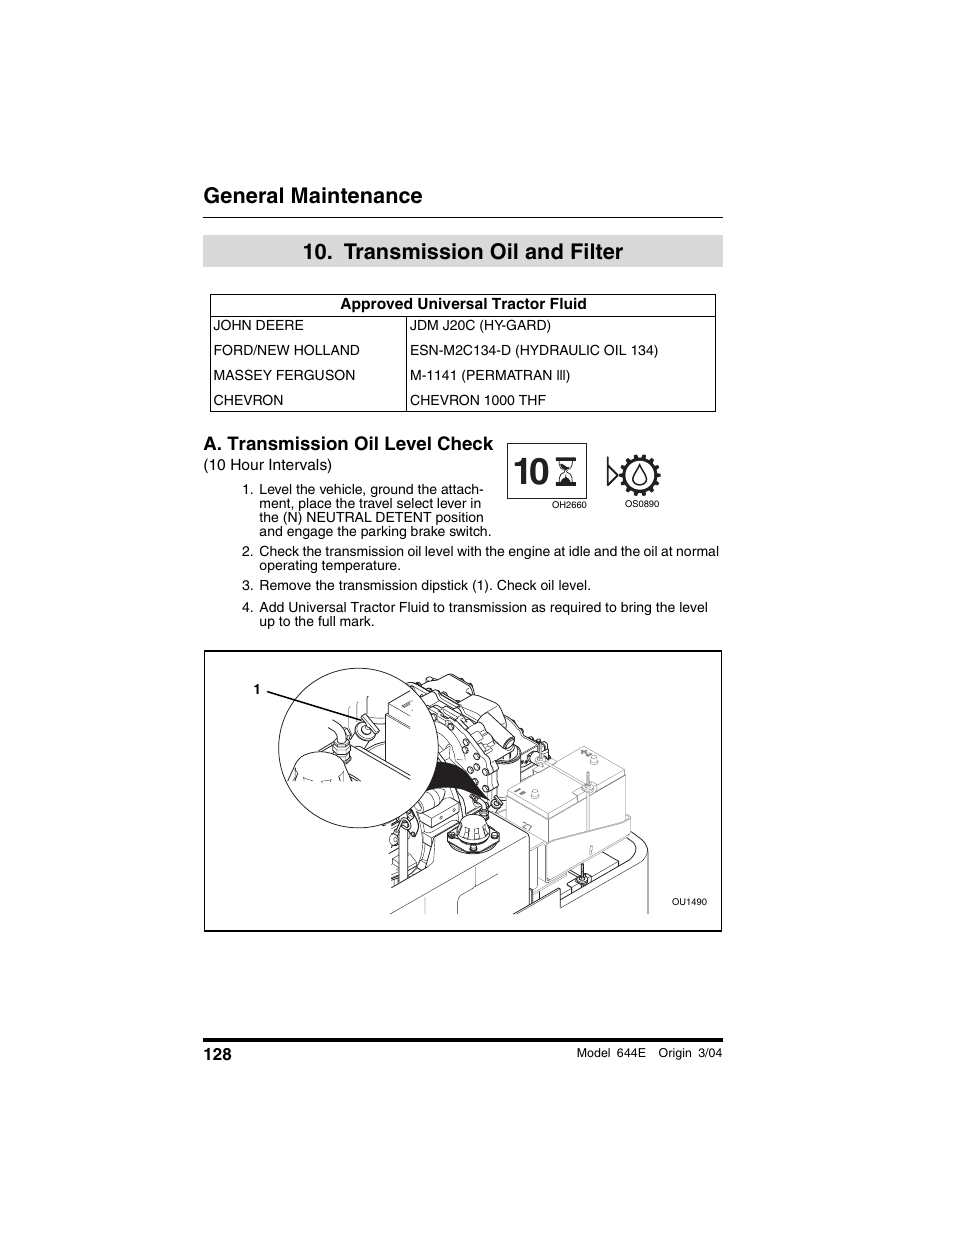 transmission oil and filter, Approved universal tractor fluid, A